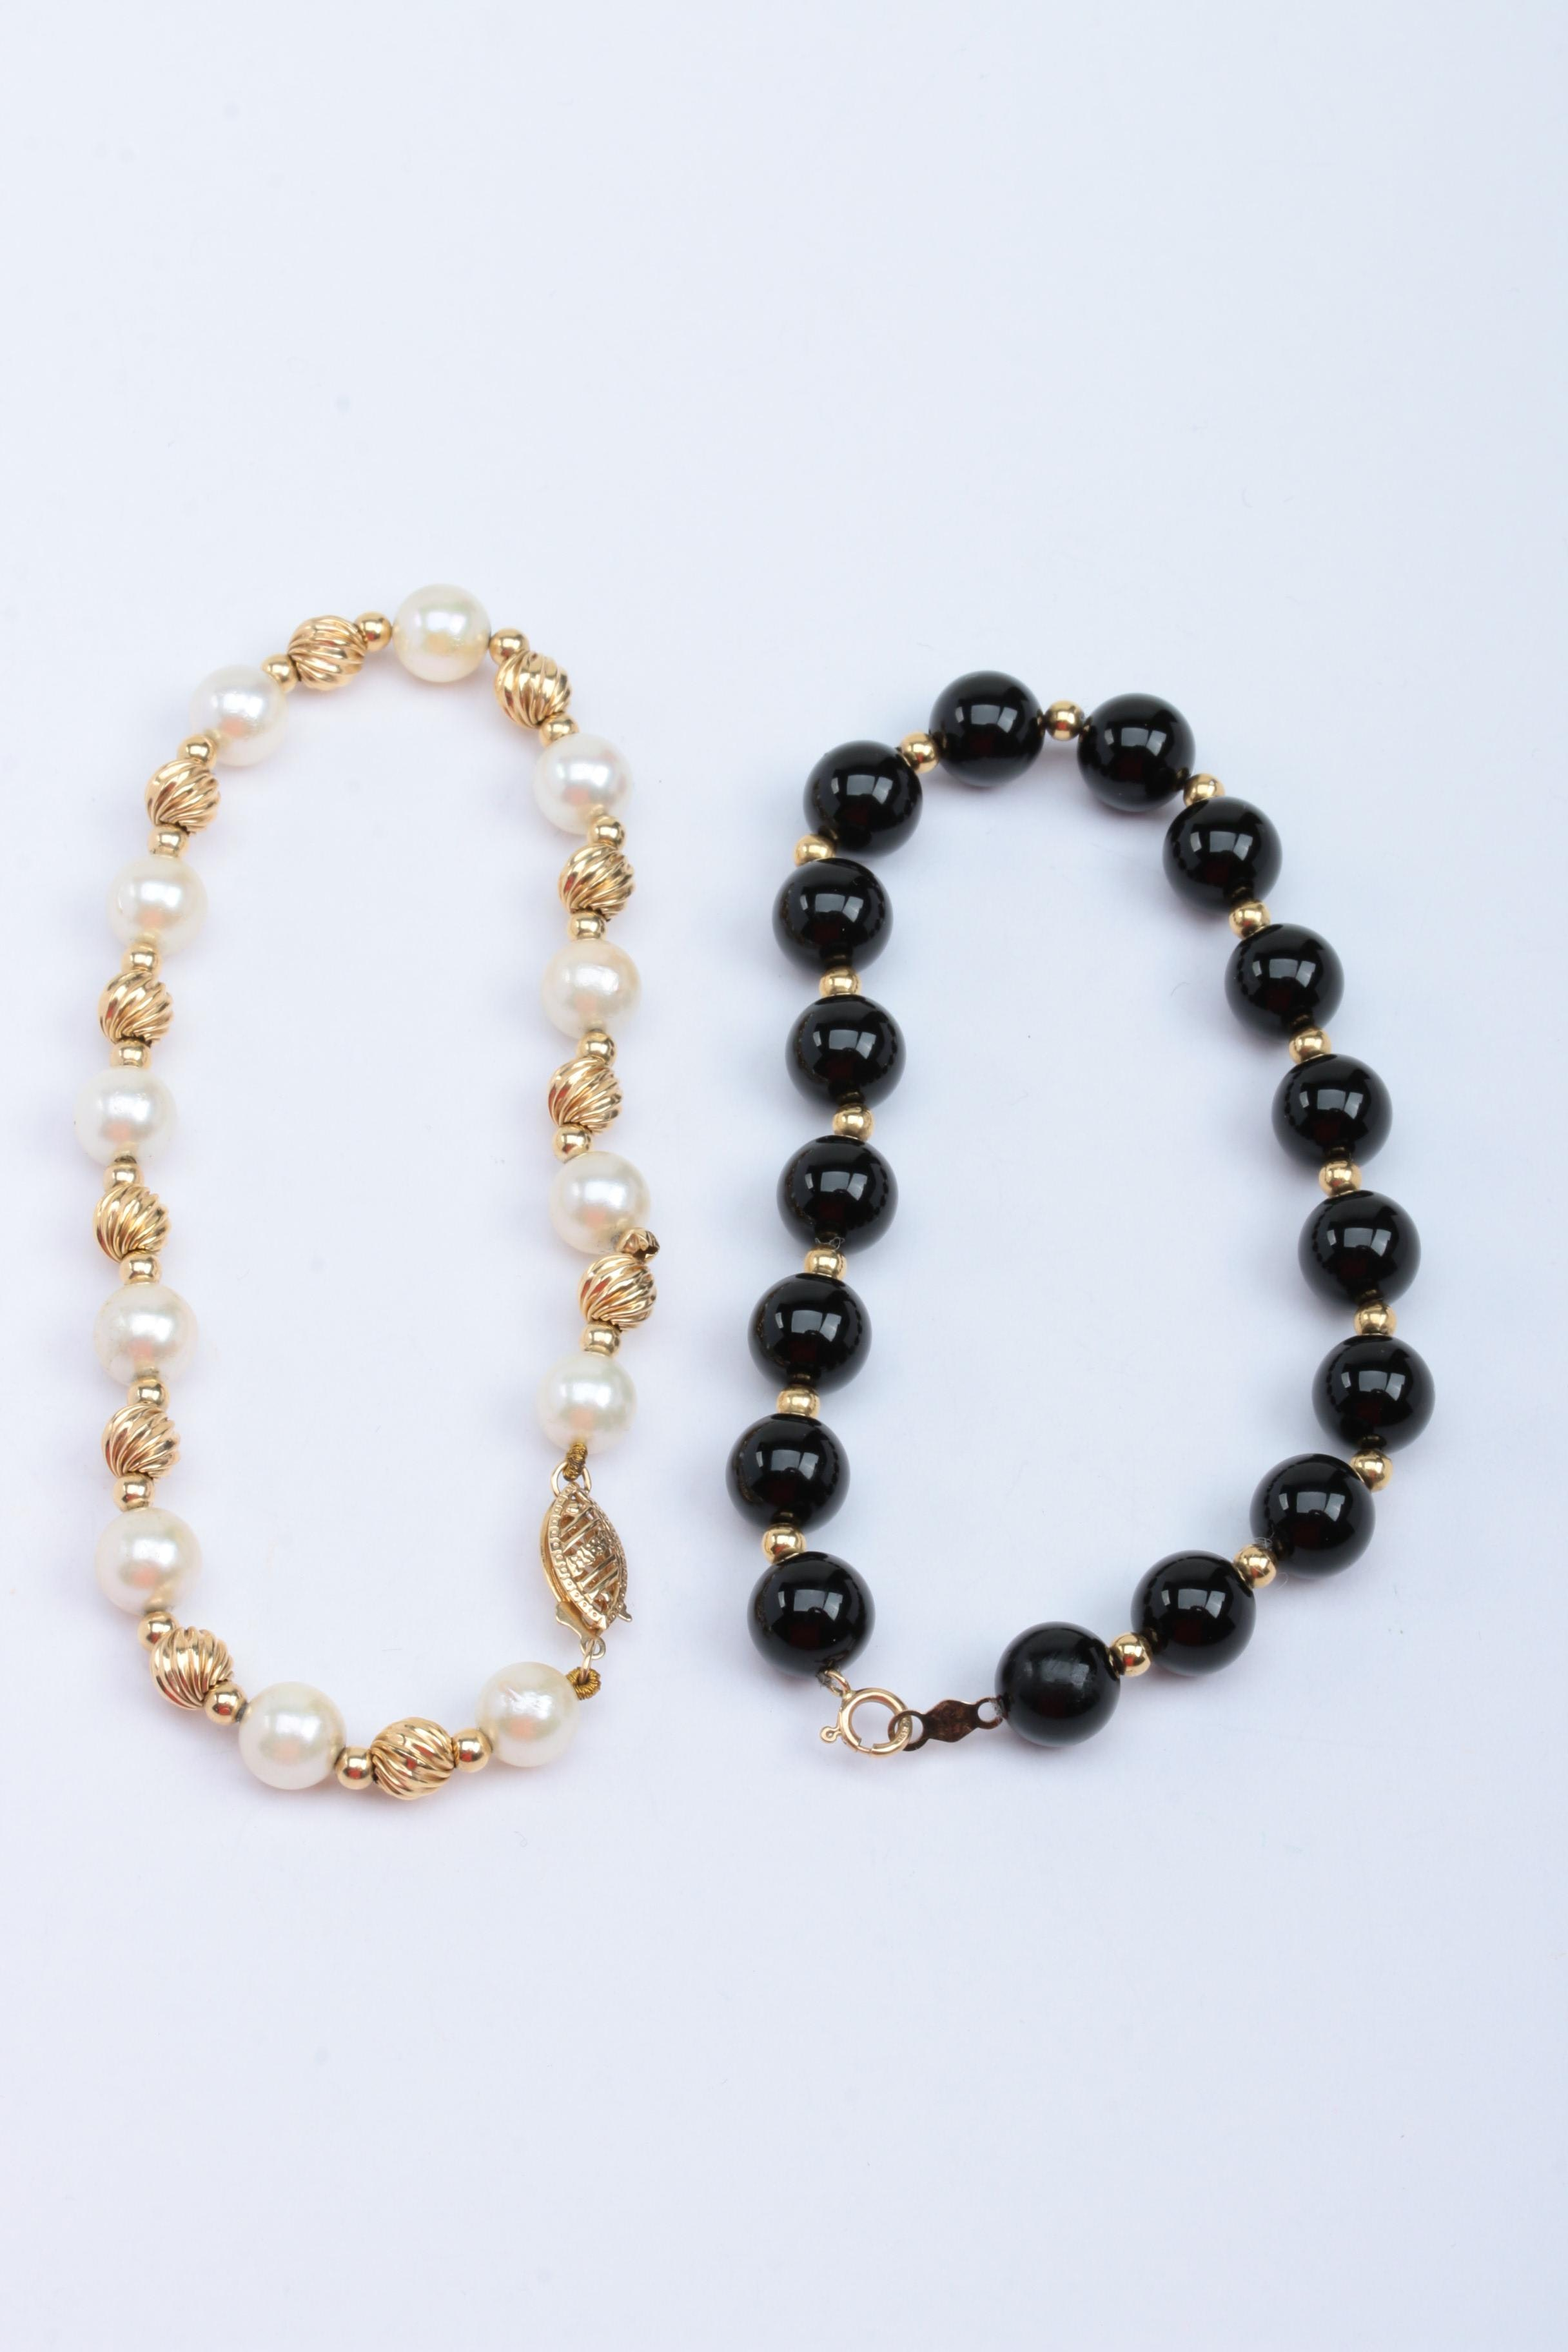 10K and 14K Yellow Gold Bracelets with Black Onyx and Cultured Pearls